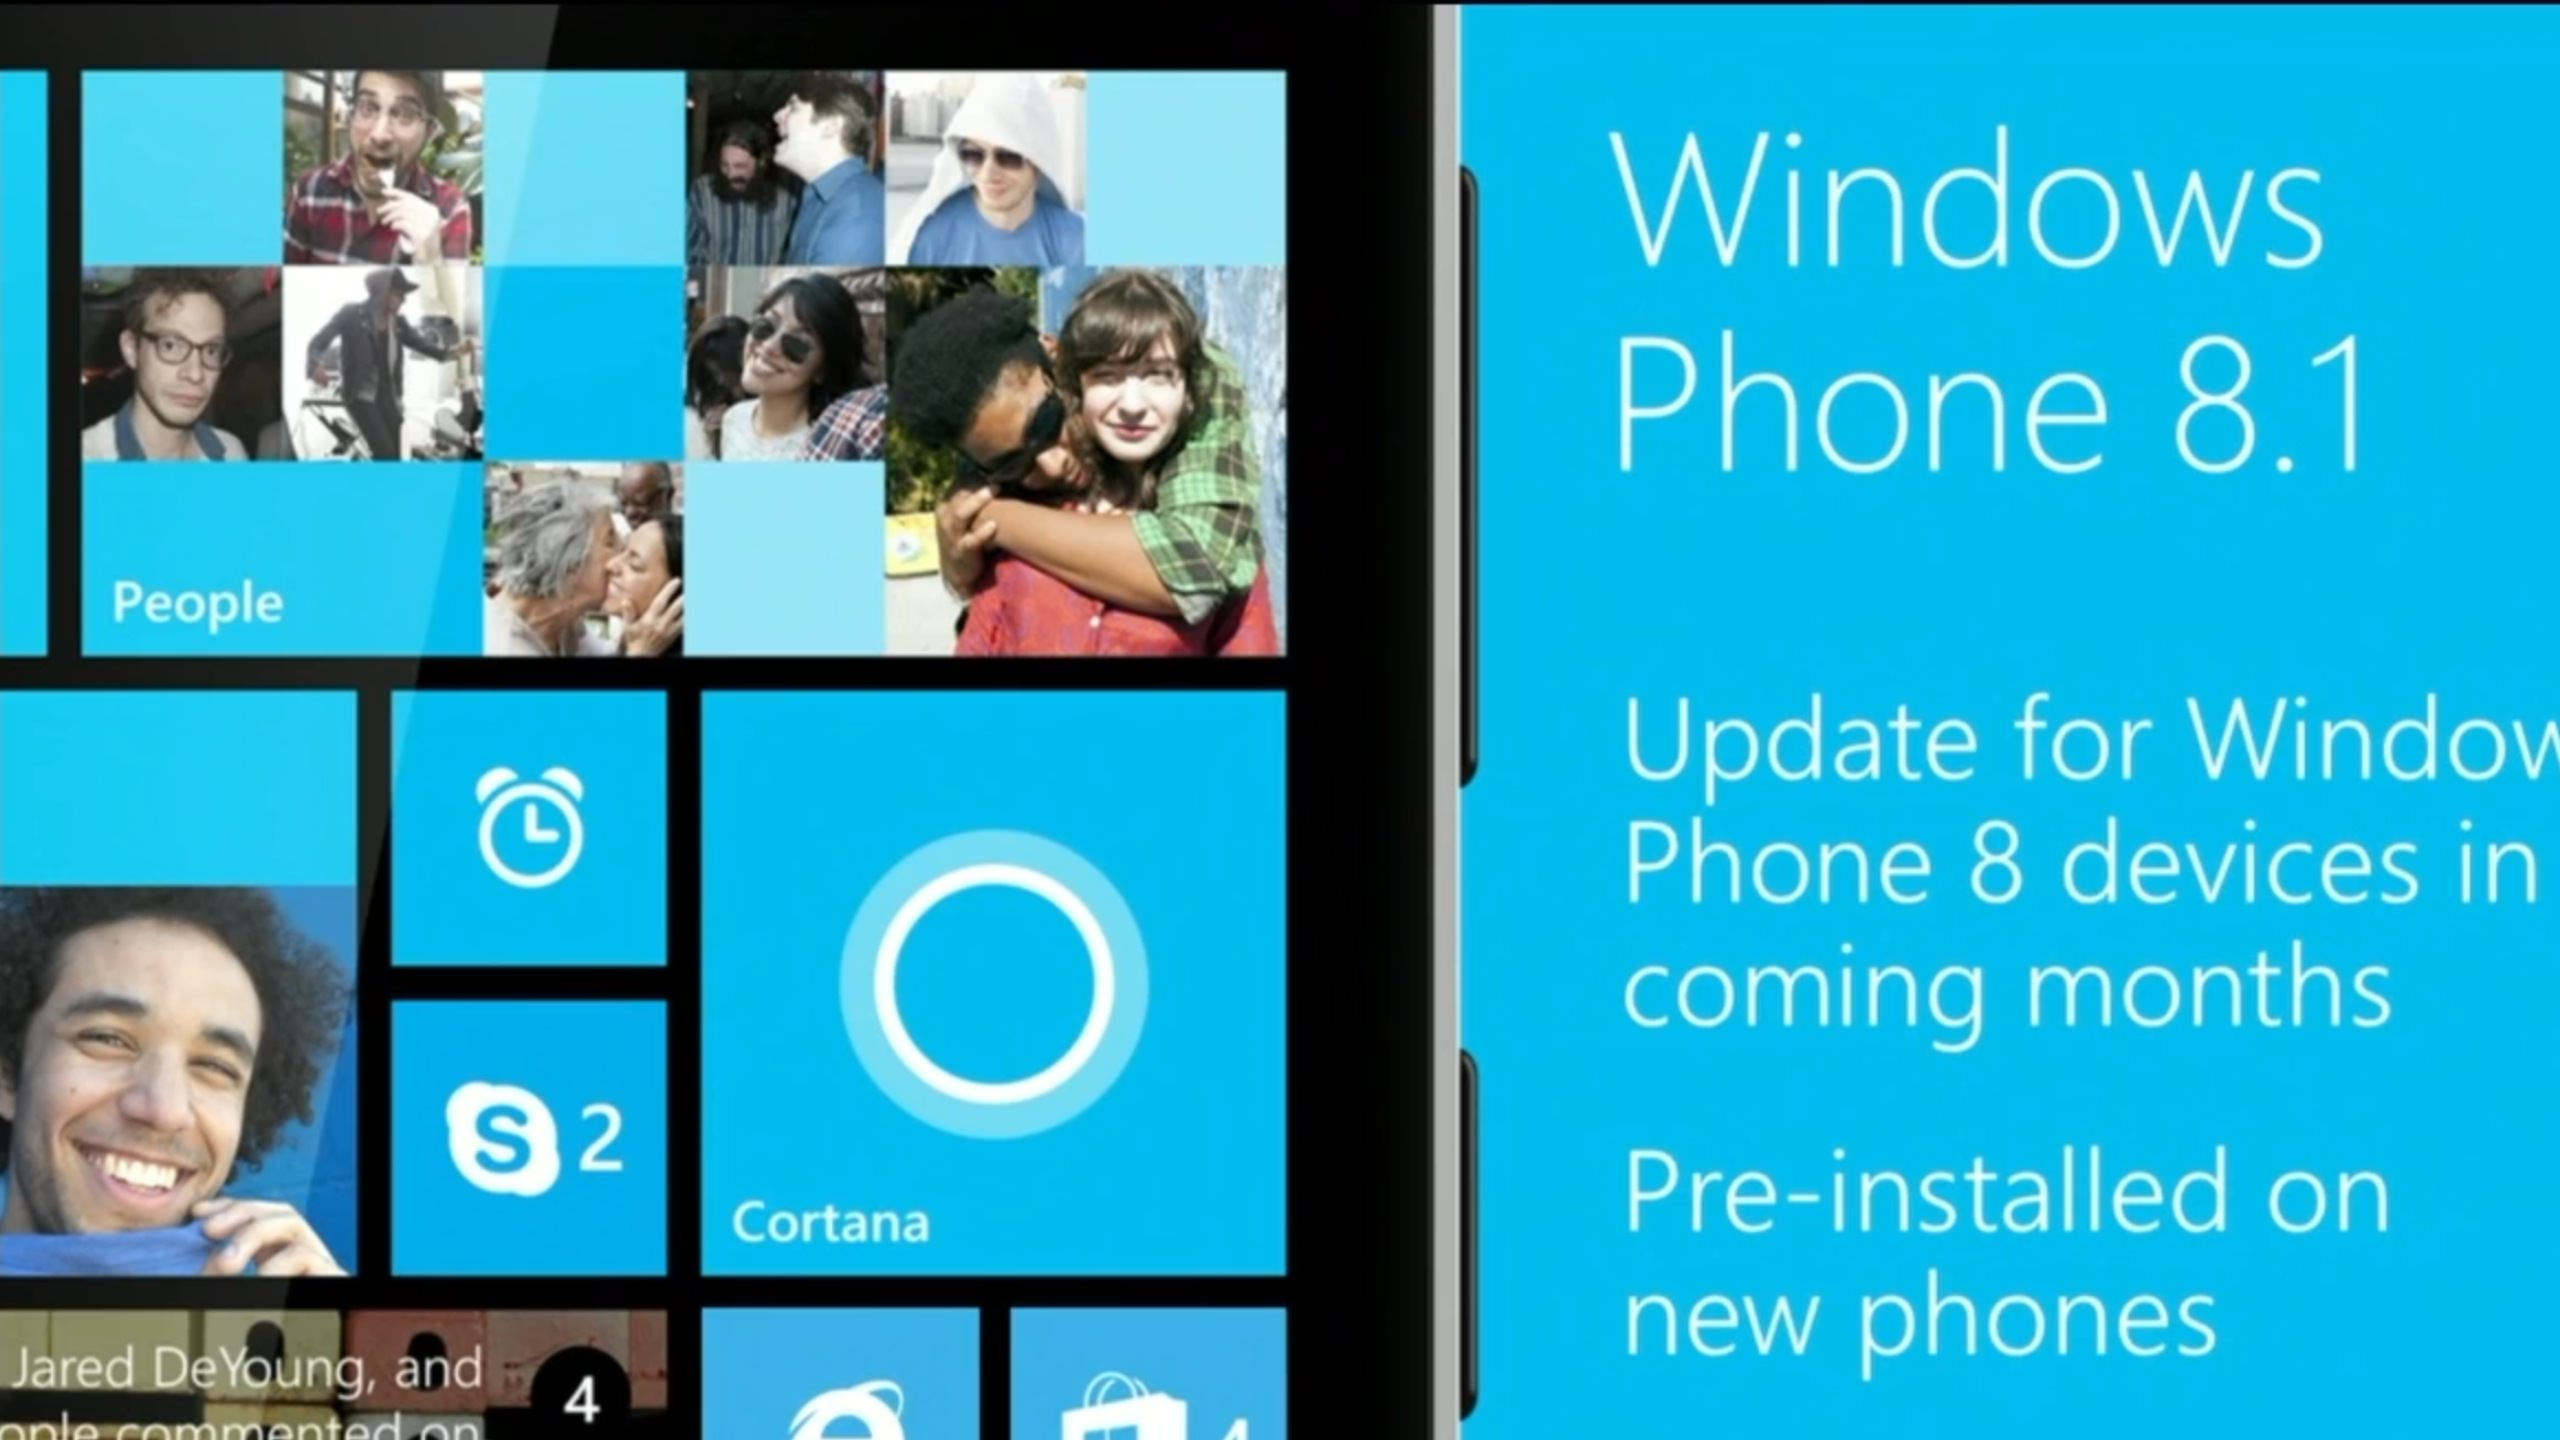 Window-Phone-8.1-Update-Available-Build-2014